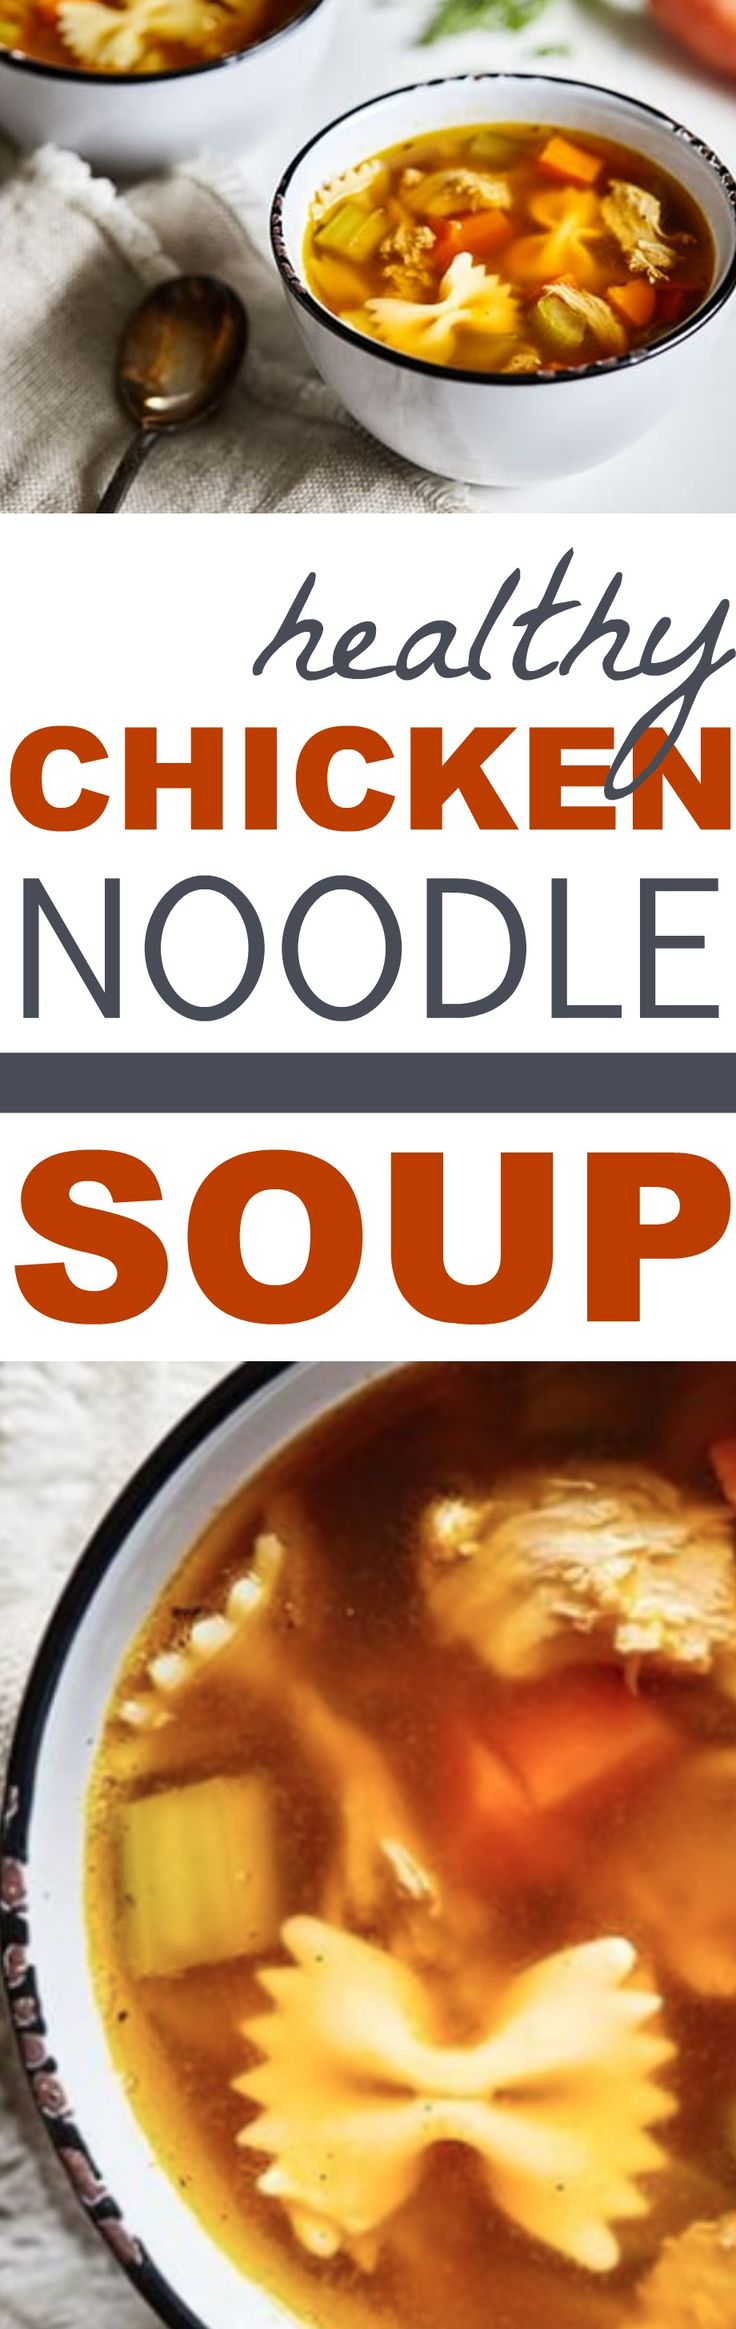 Healthy Chicken Noodle Soup #chickennoodlesoup #soup #healthysoup #cleaneatingsoup #healthychickennoodlesoup #cleaneatingchickennoodlesoup #cleaneatingsoup #dinner #lunch